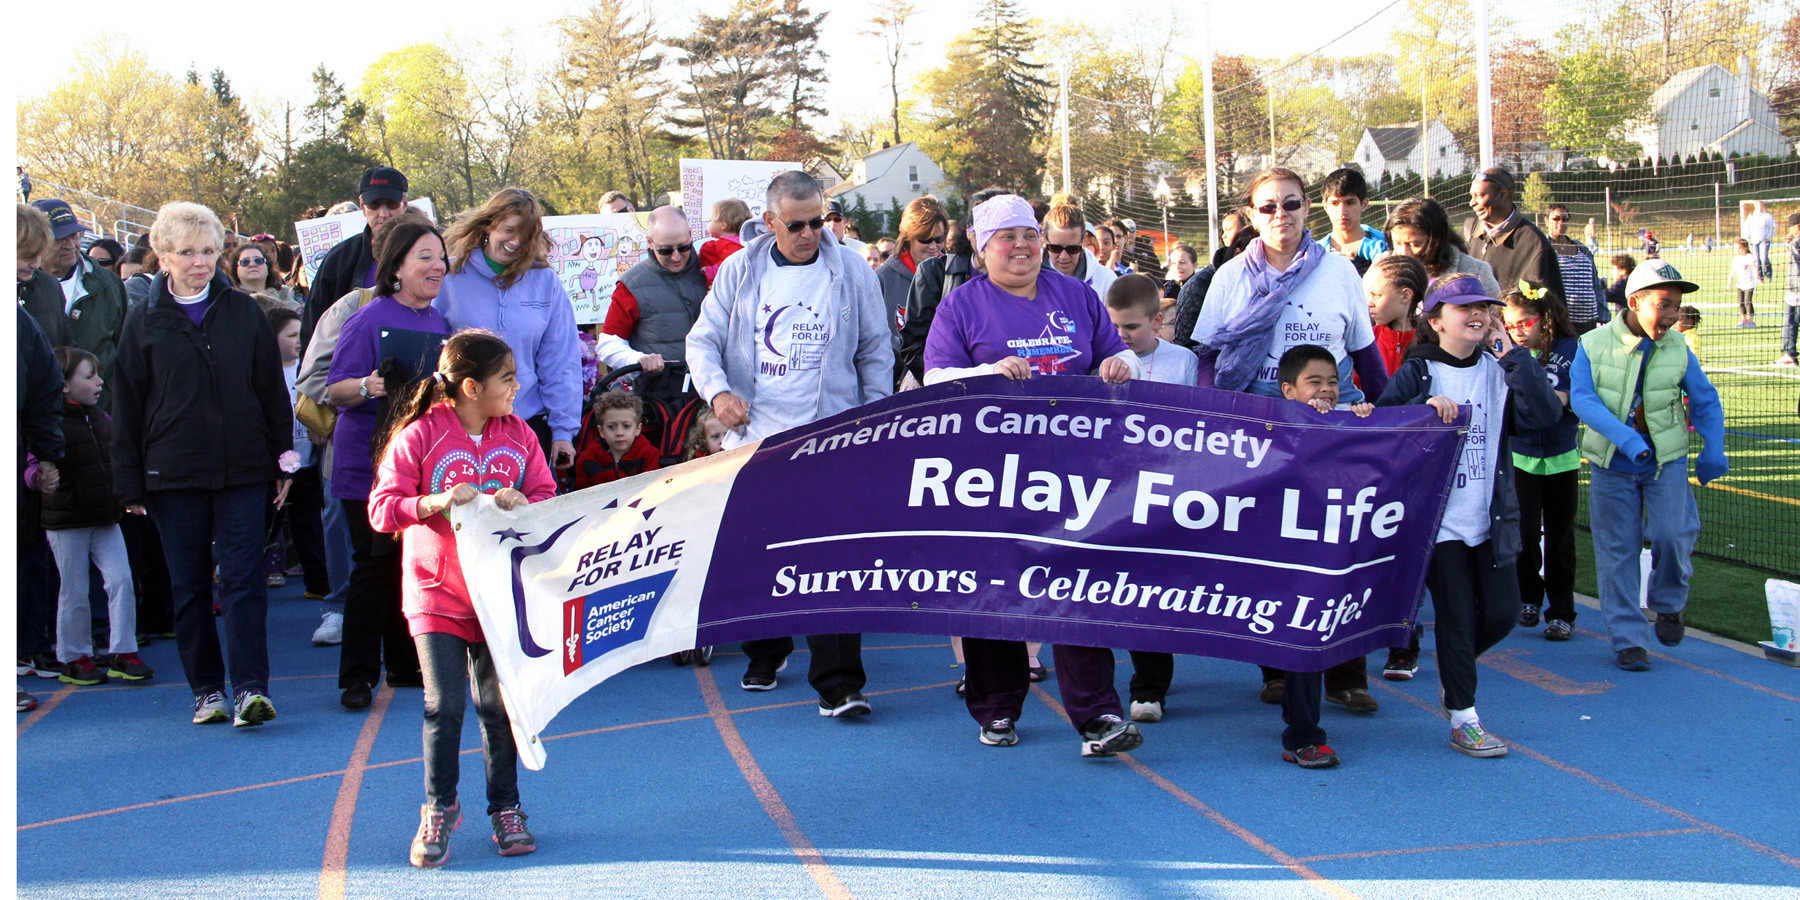 The Cancer survivors and their caregivers open the relay with the first lap around the track.